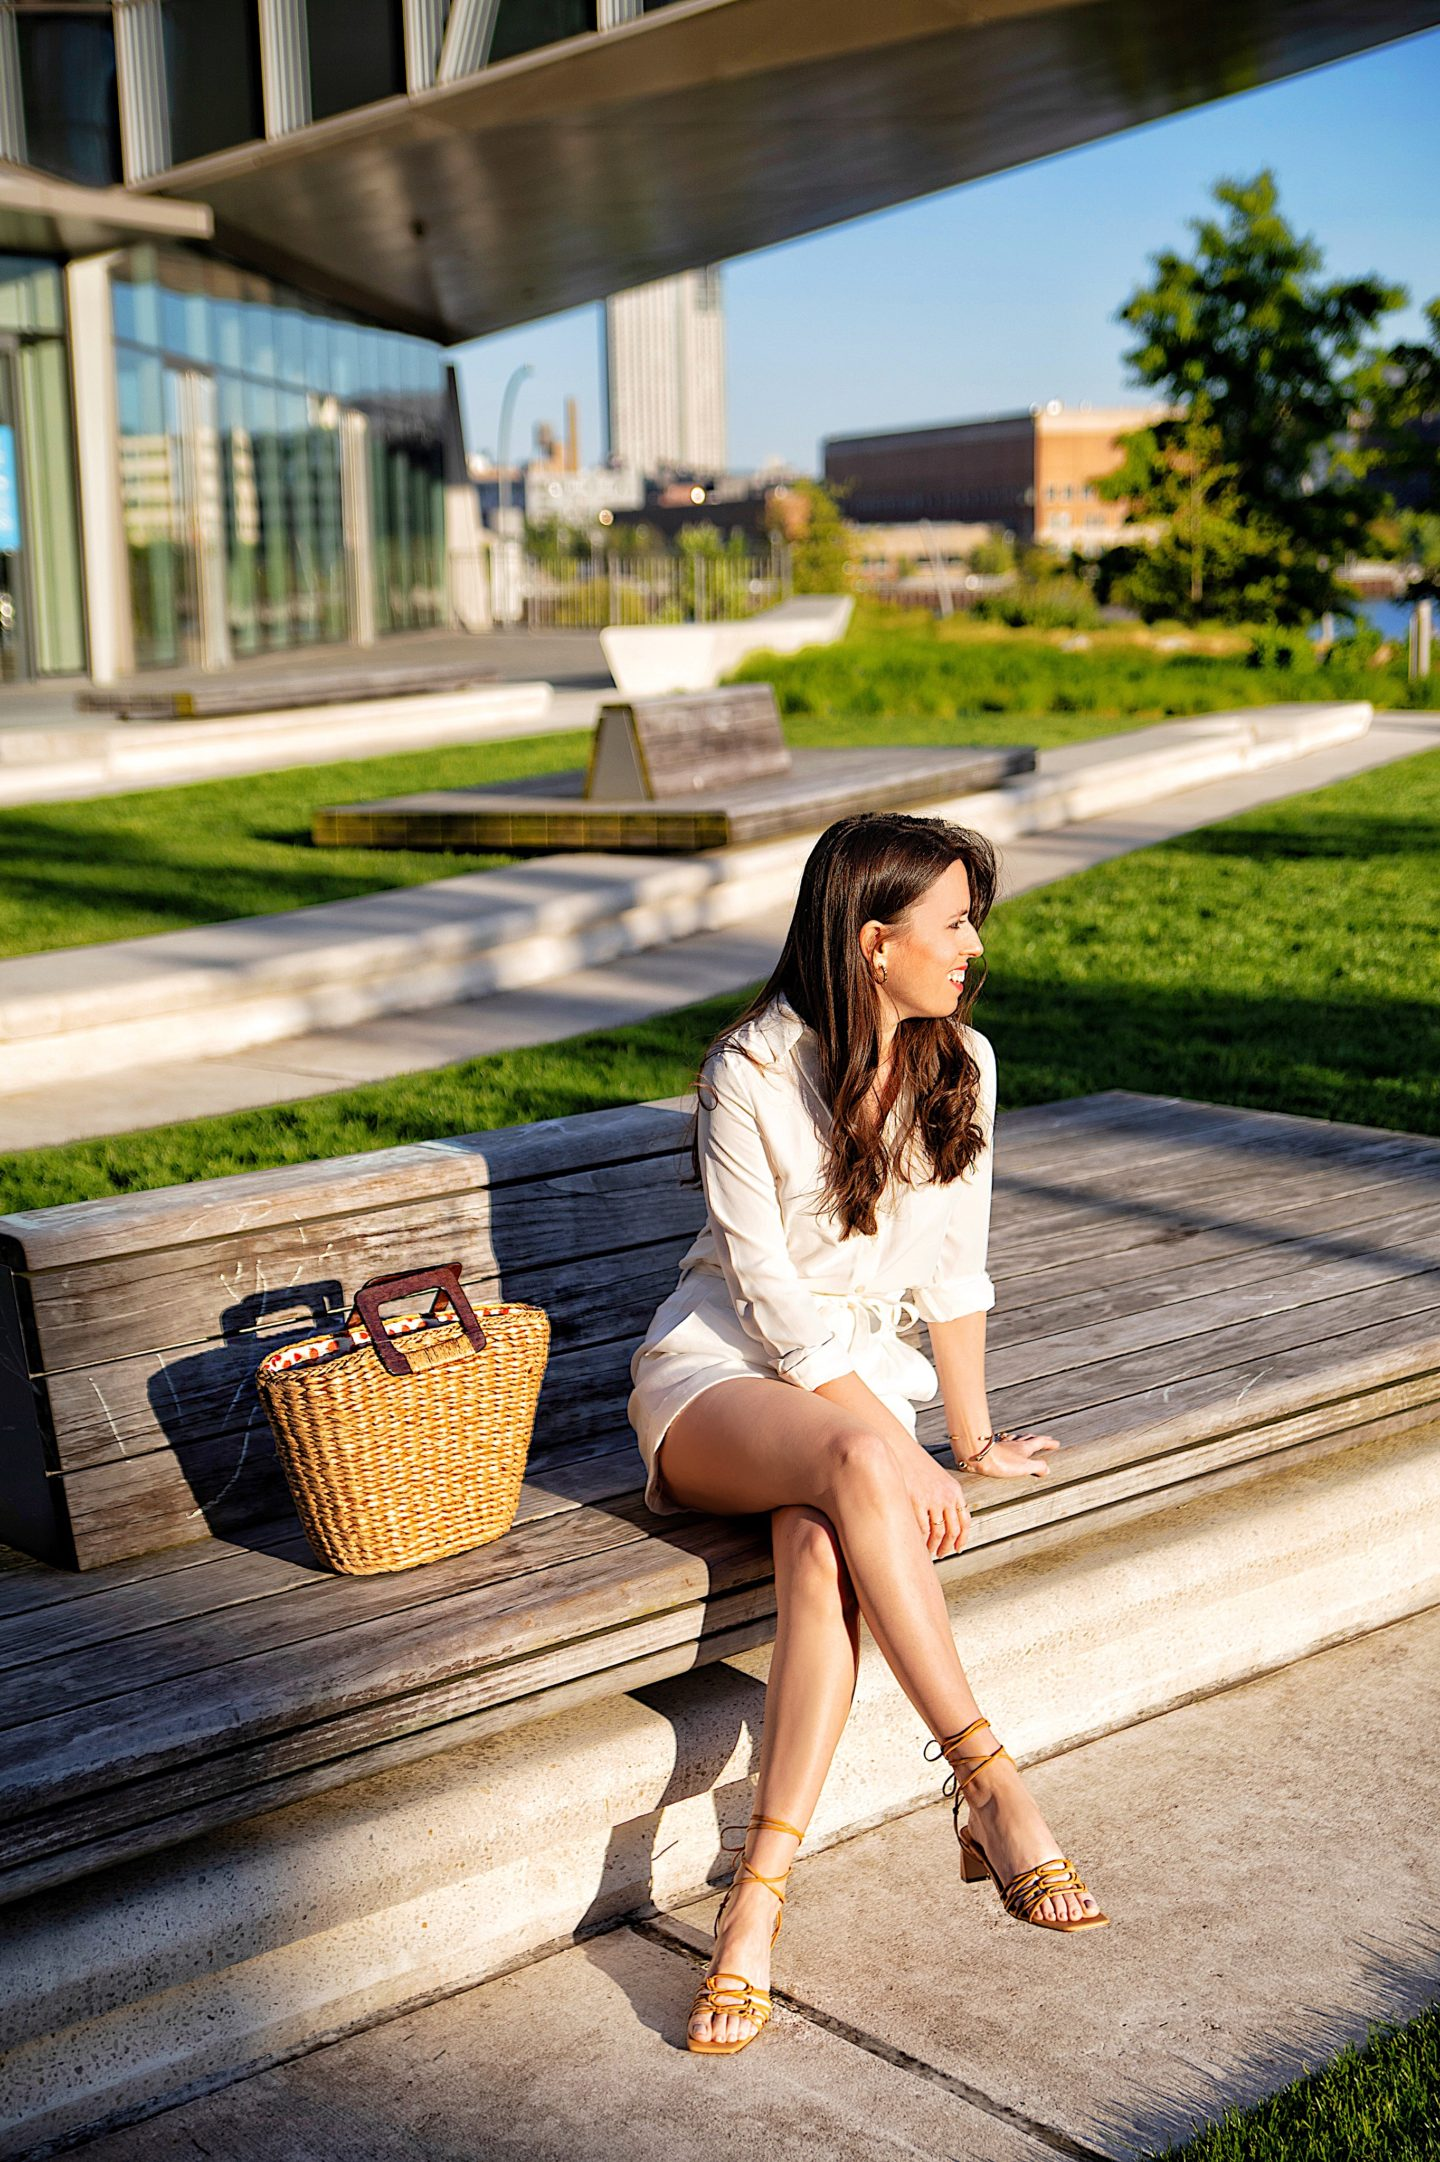 Ana Florentina wearing Ann Taylor lace up sandals and straw bag